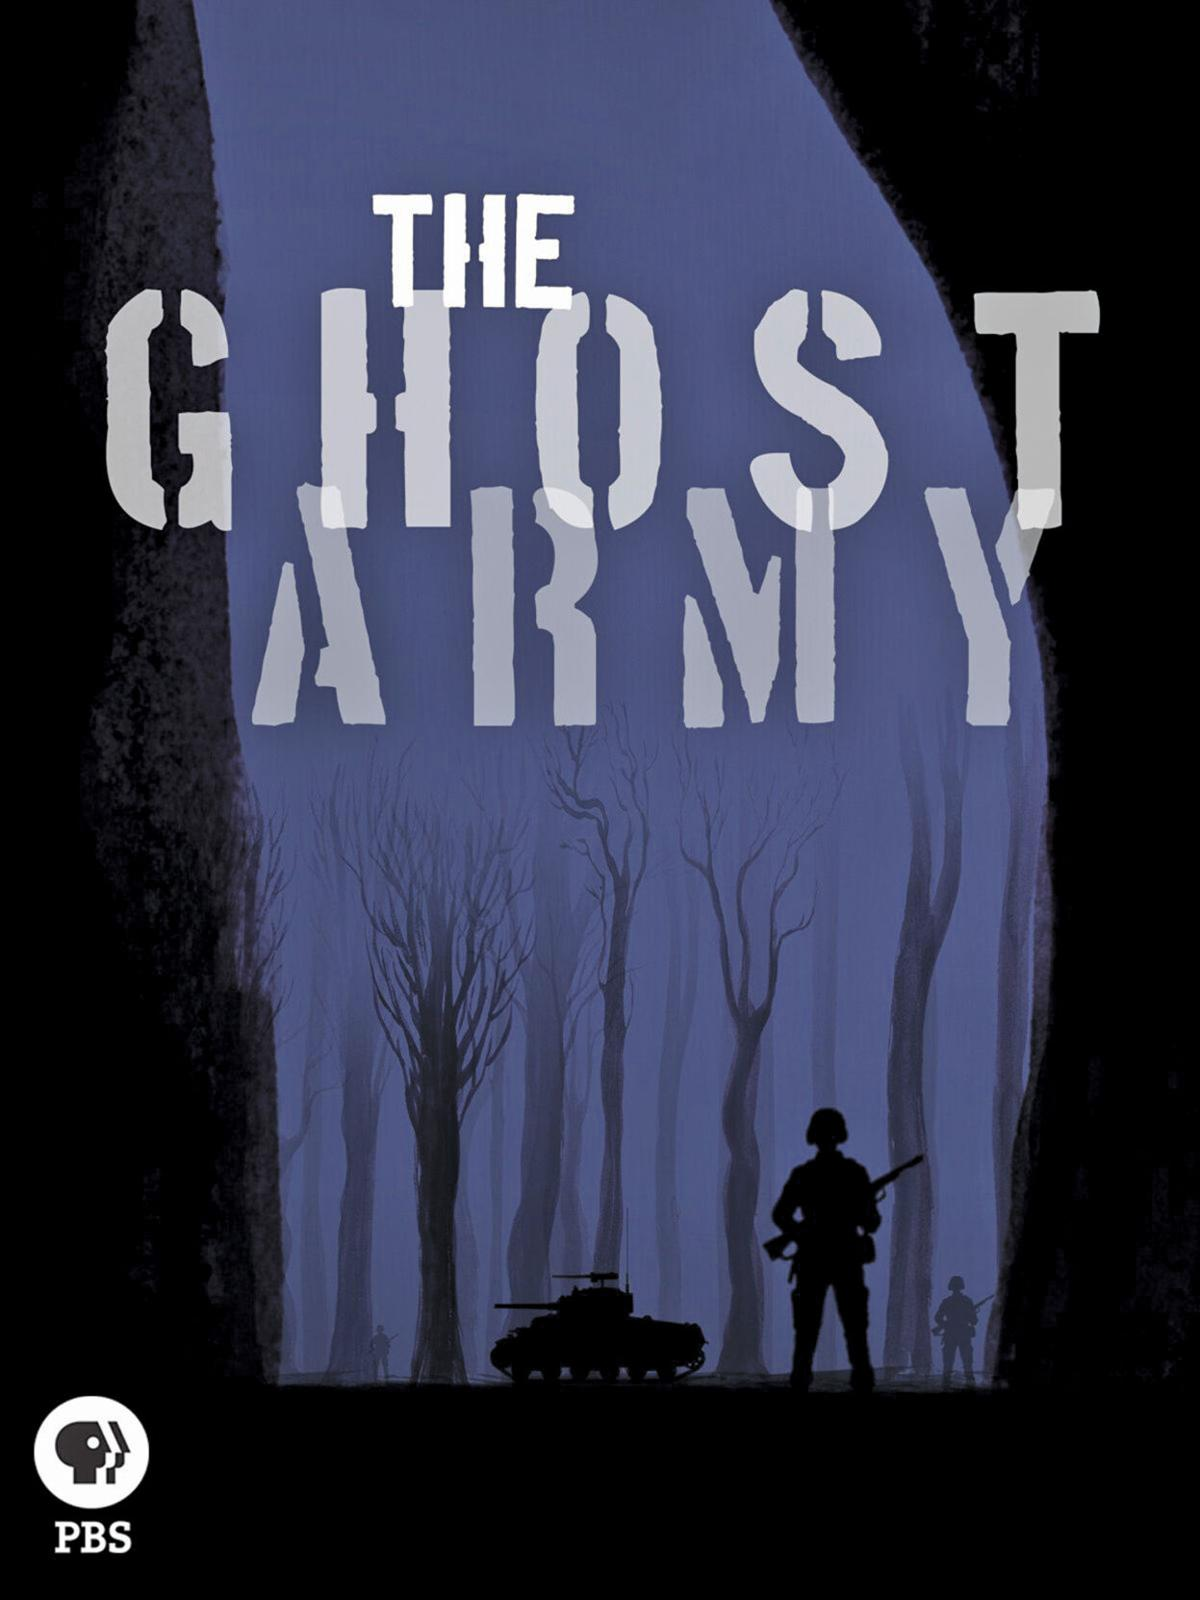 The Ghost Army.jpg